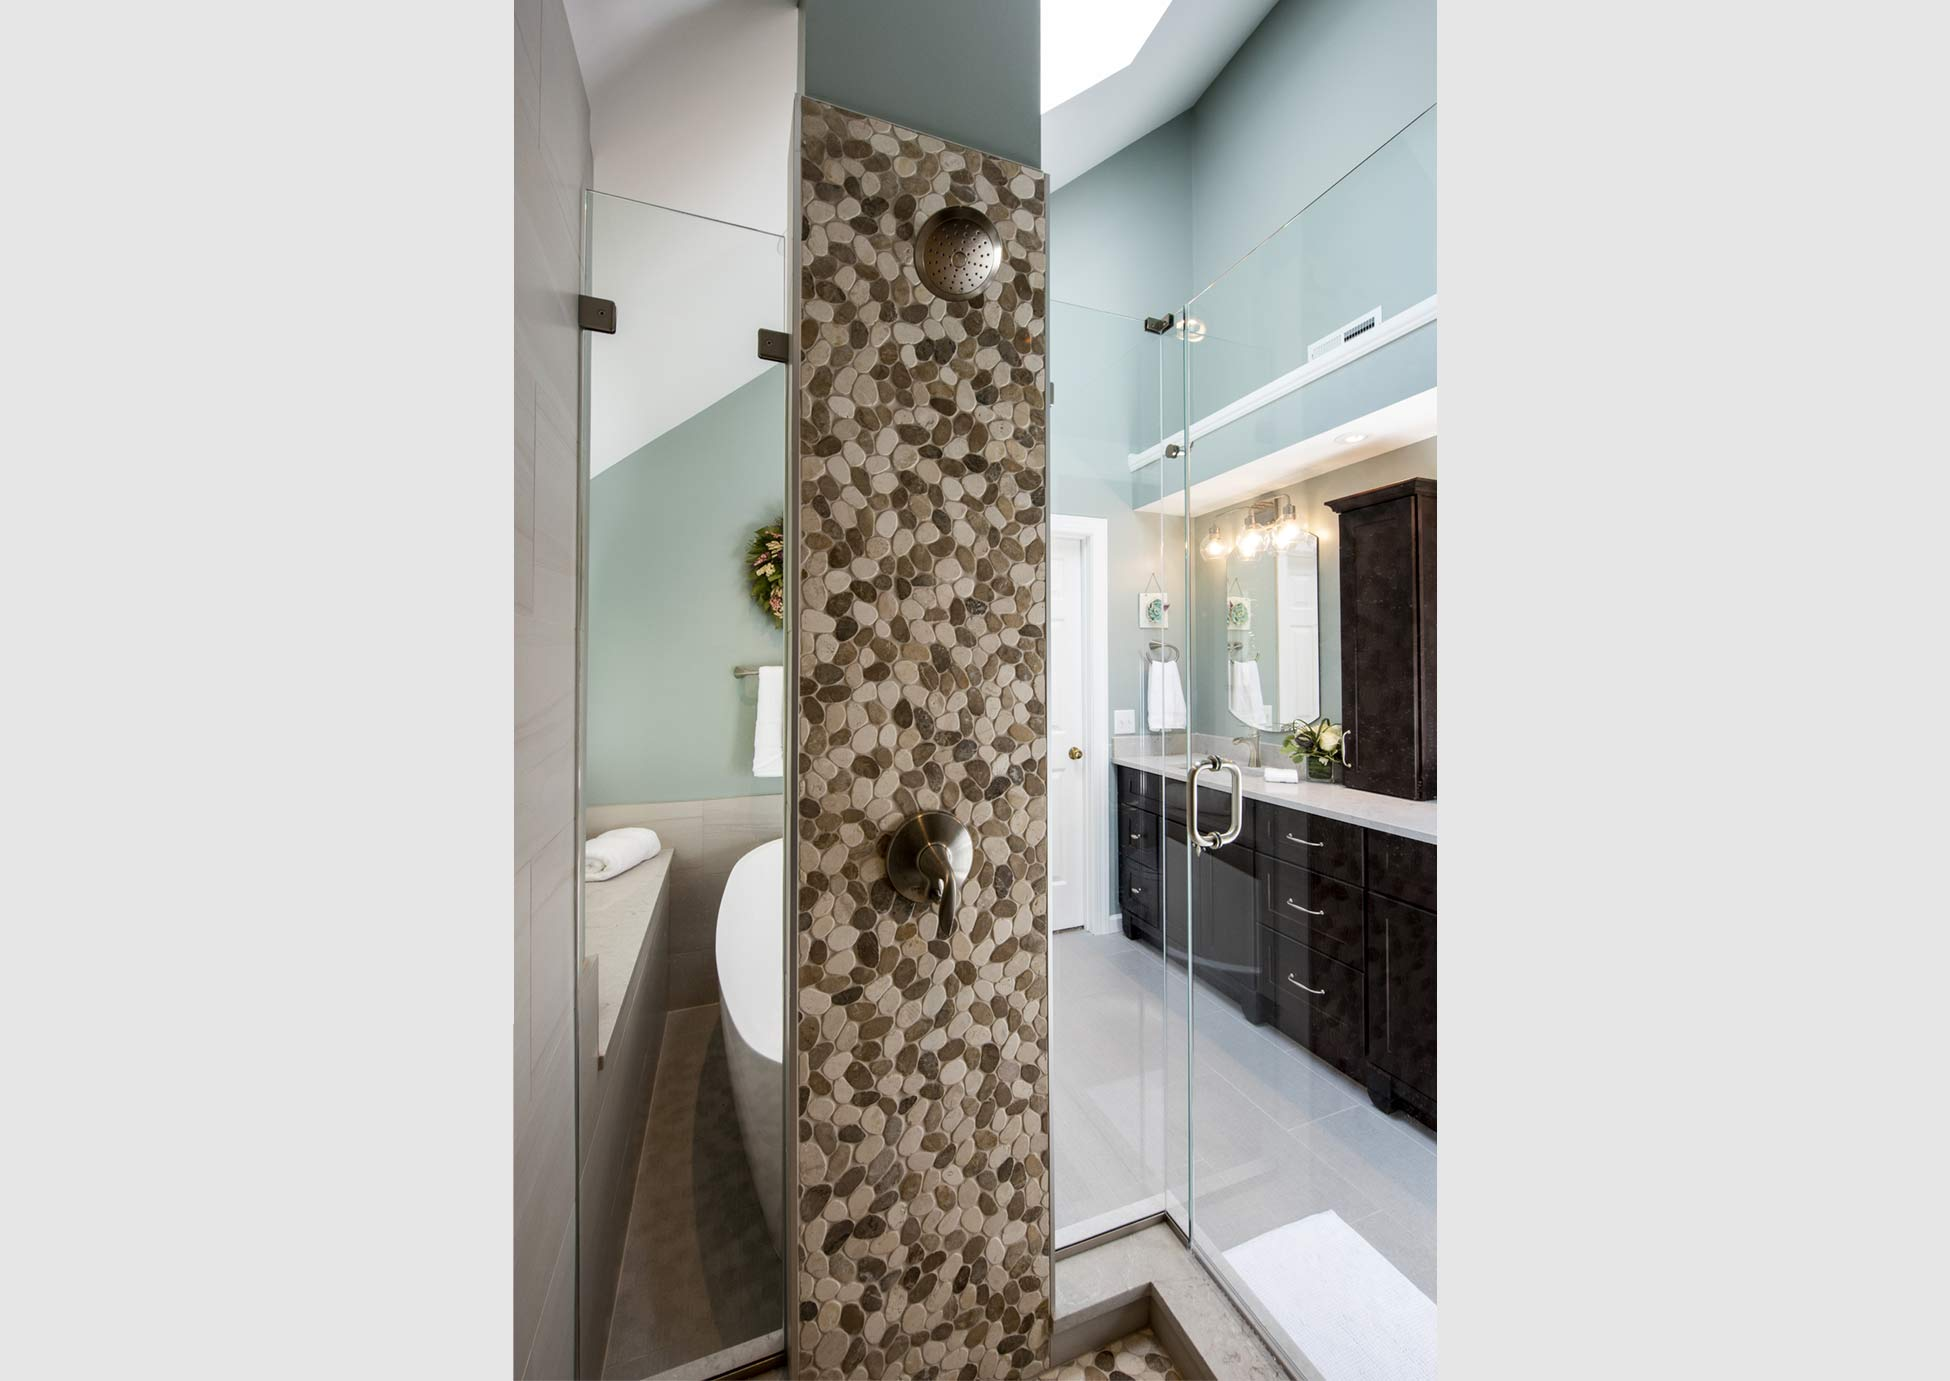 home remodeling companies near me, Cederberg Kitchens + Renovations